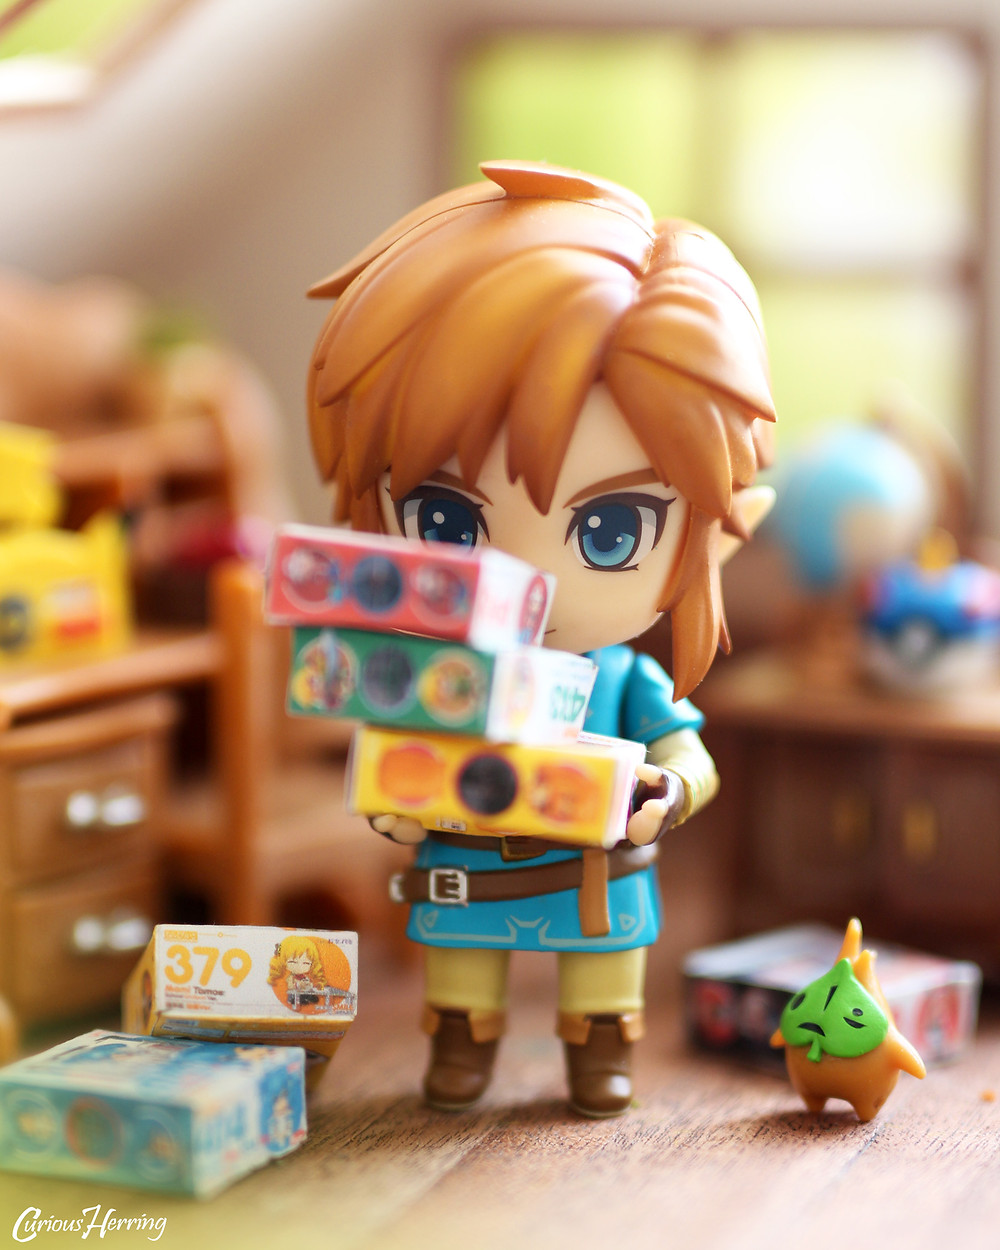 Nendoroid, Link, Breath of teh Wild, Toy Photography, Nendoroid Photography, Miniatures, Photography, Zelda, Legend of Zelda